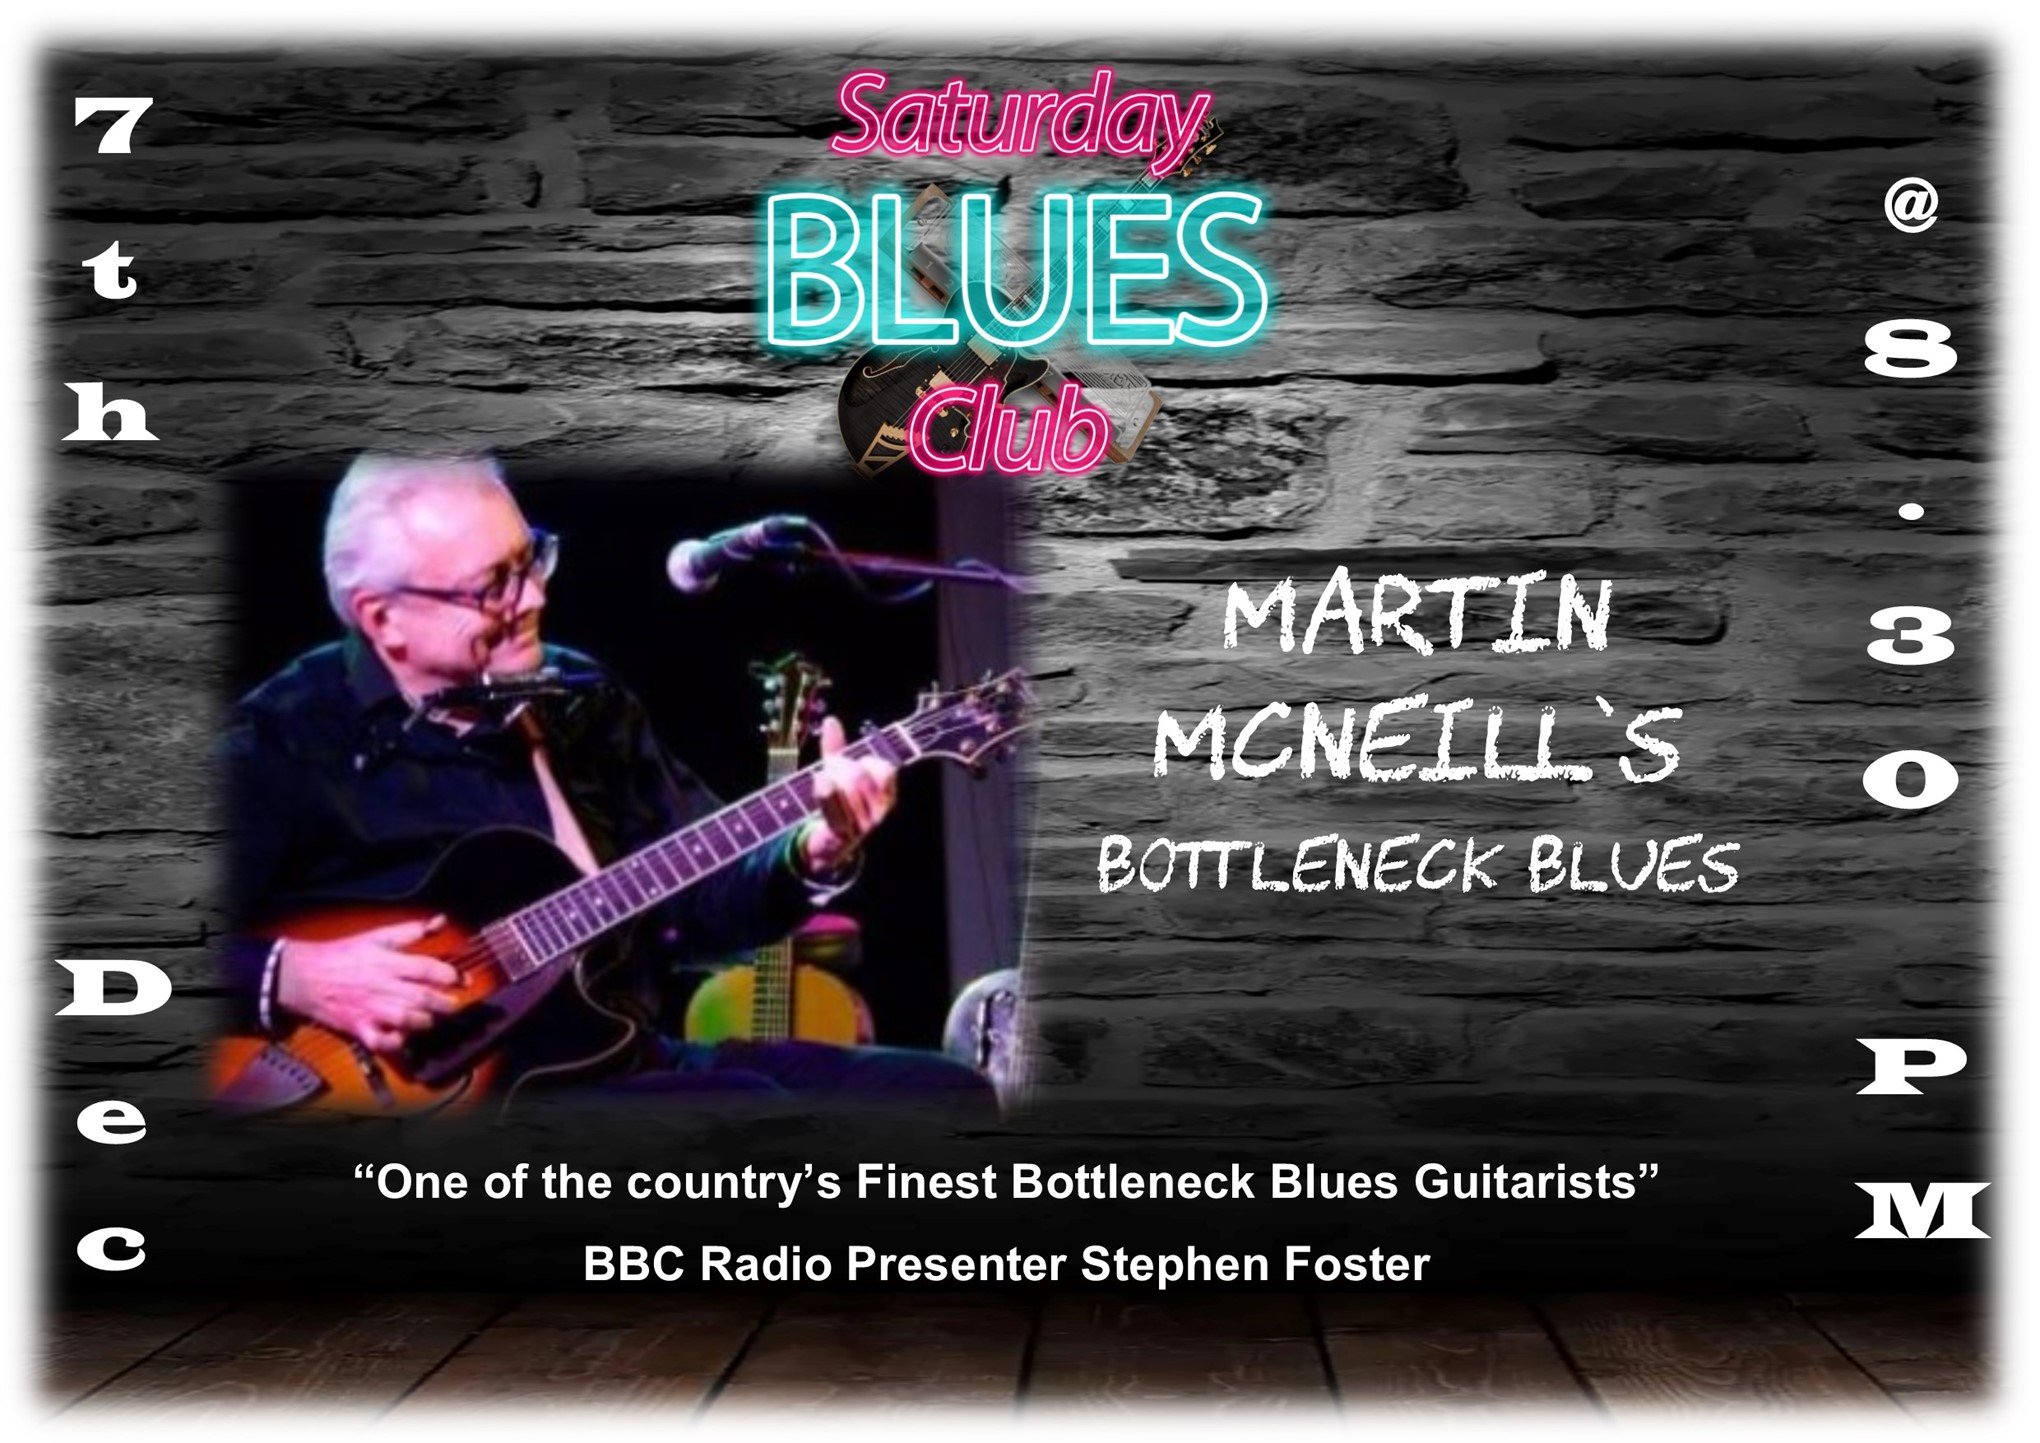 Blues @ The Bell presents Martin McNeill's Bottleneck Blues